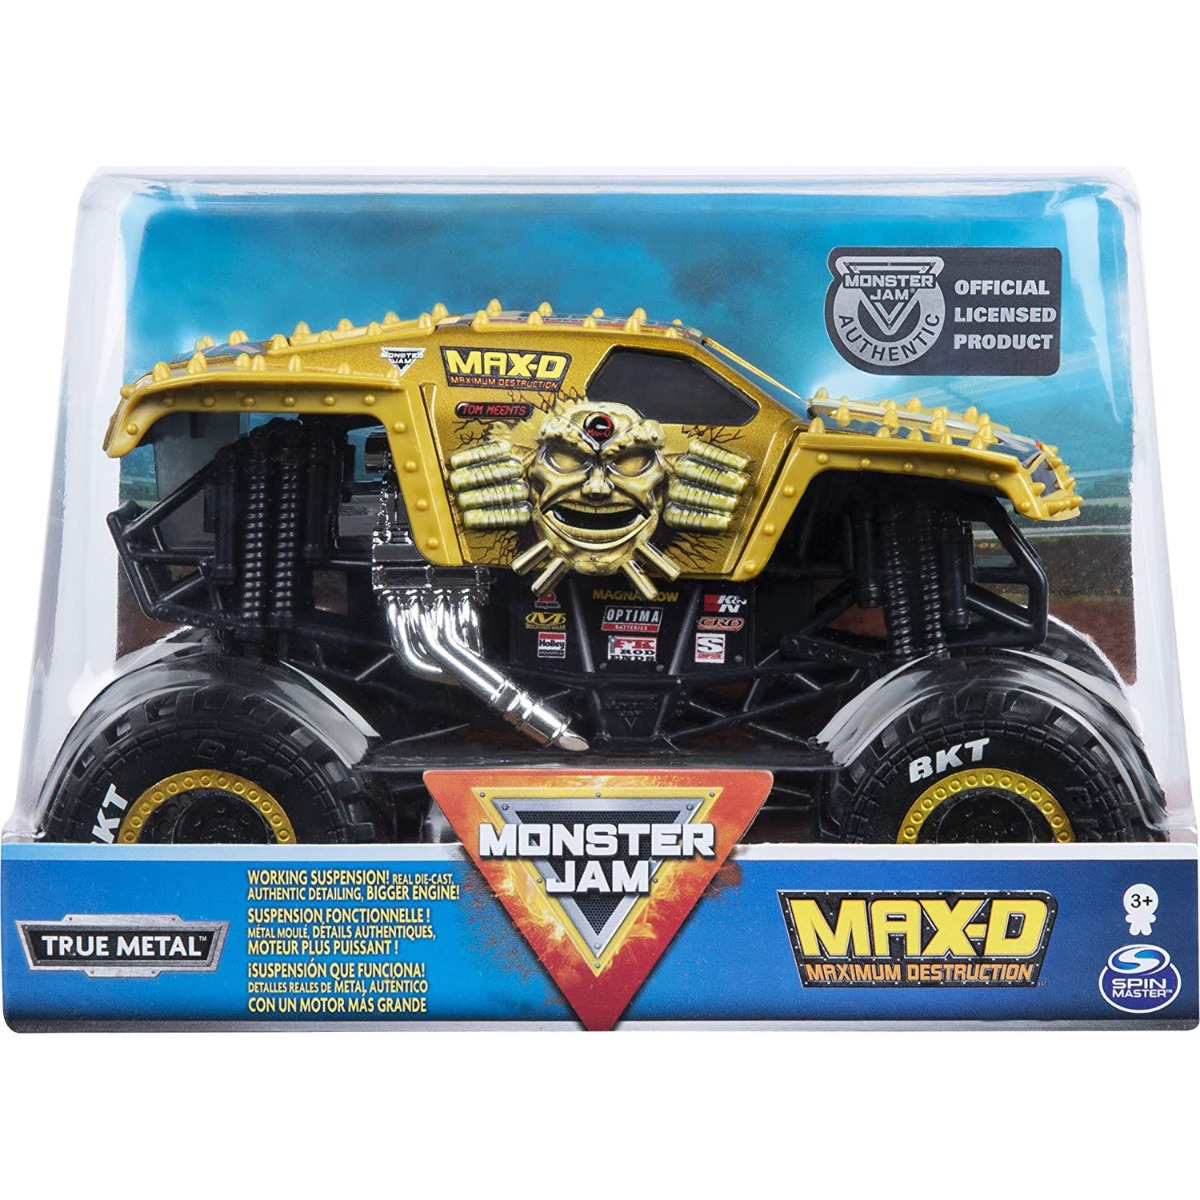 Masinuta Monster Jam, Max-D Maximum Destruction, Scara 1:24